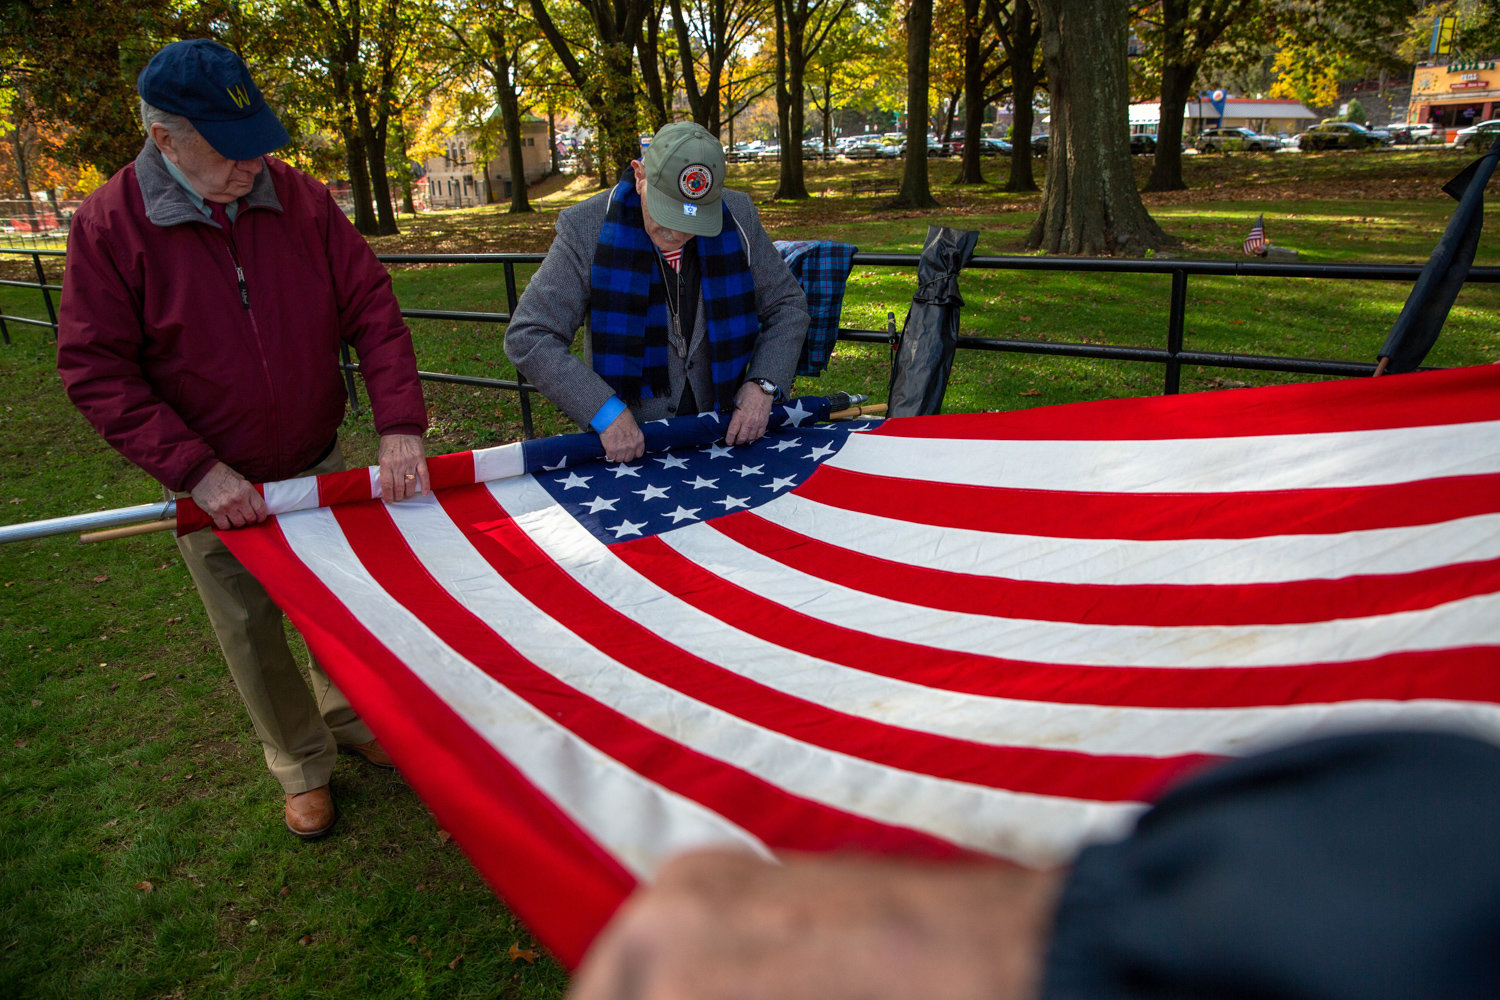 Herb Barret, right, helps roll up the American flag at the end of a Veterans Day ceremony in Van Cortlandt Park's Memorial Grove.